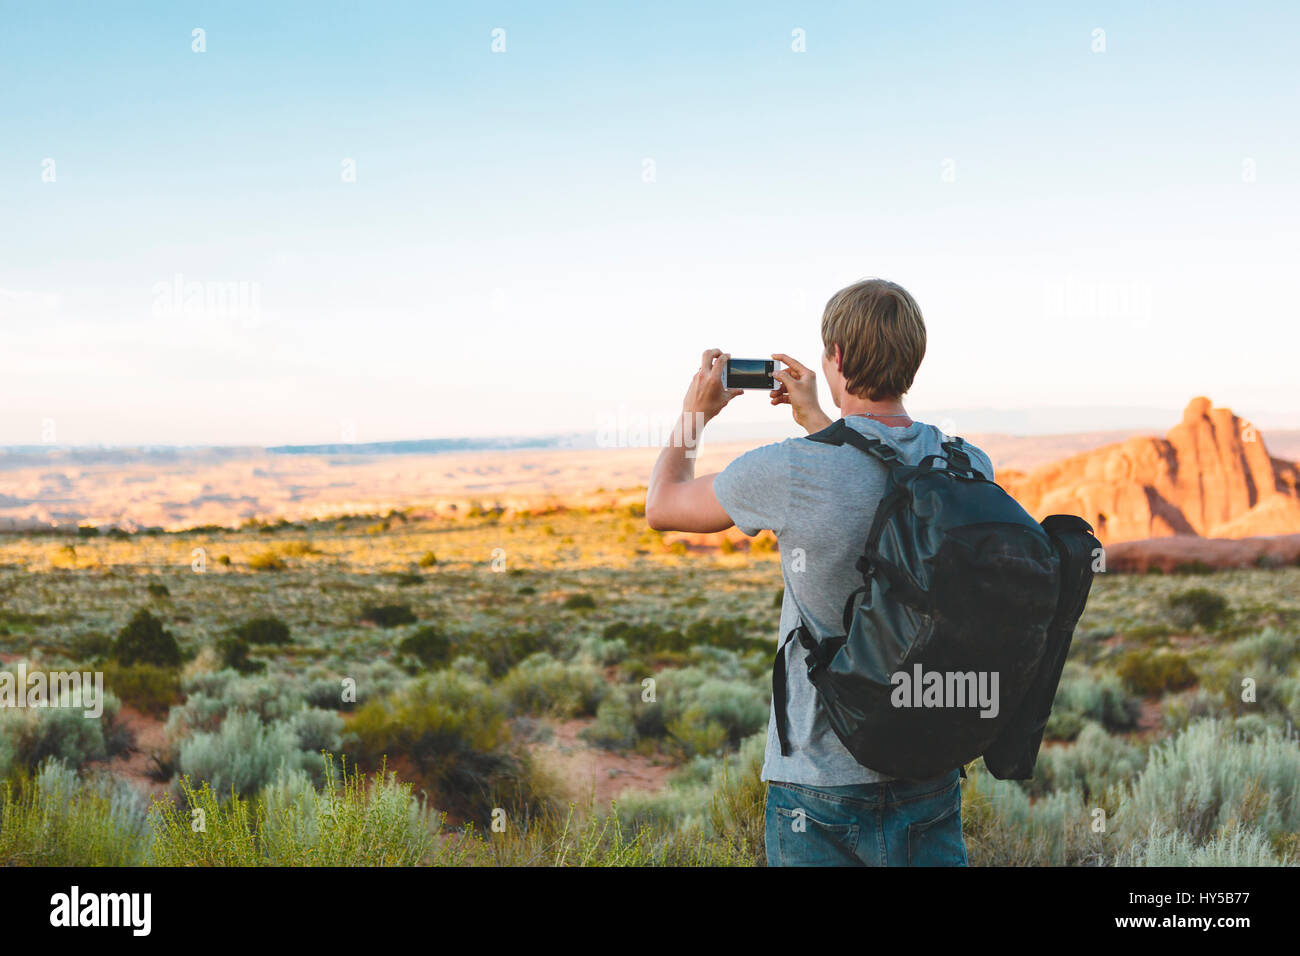 Usa, Utah, Moab, Arches National Park, Mann fotografieren Landschaft Stockbild